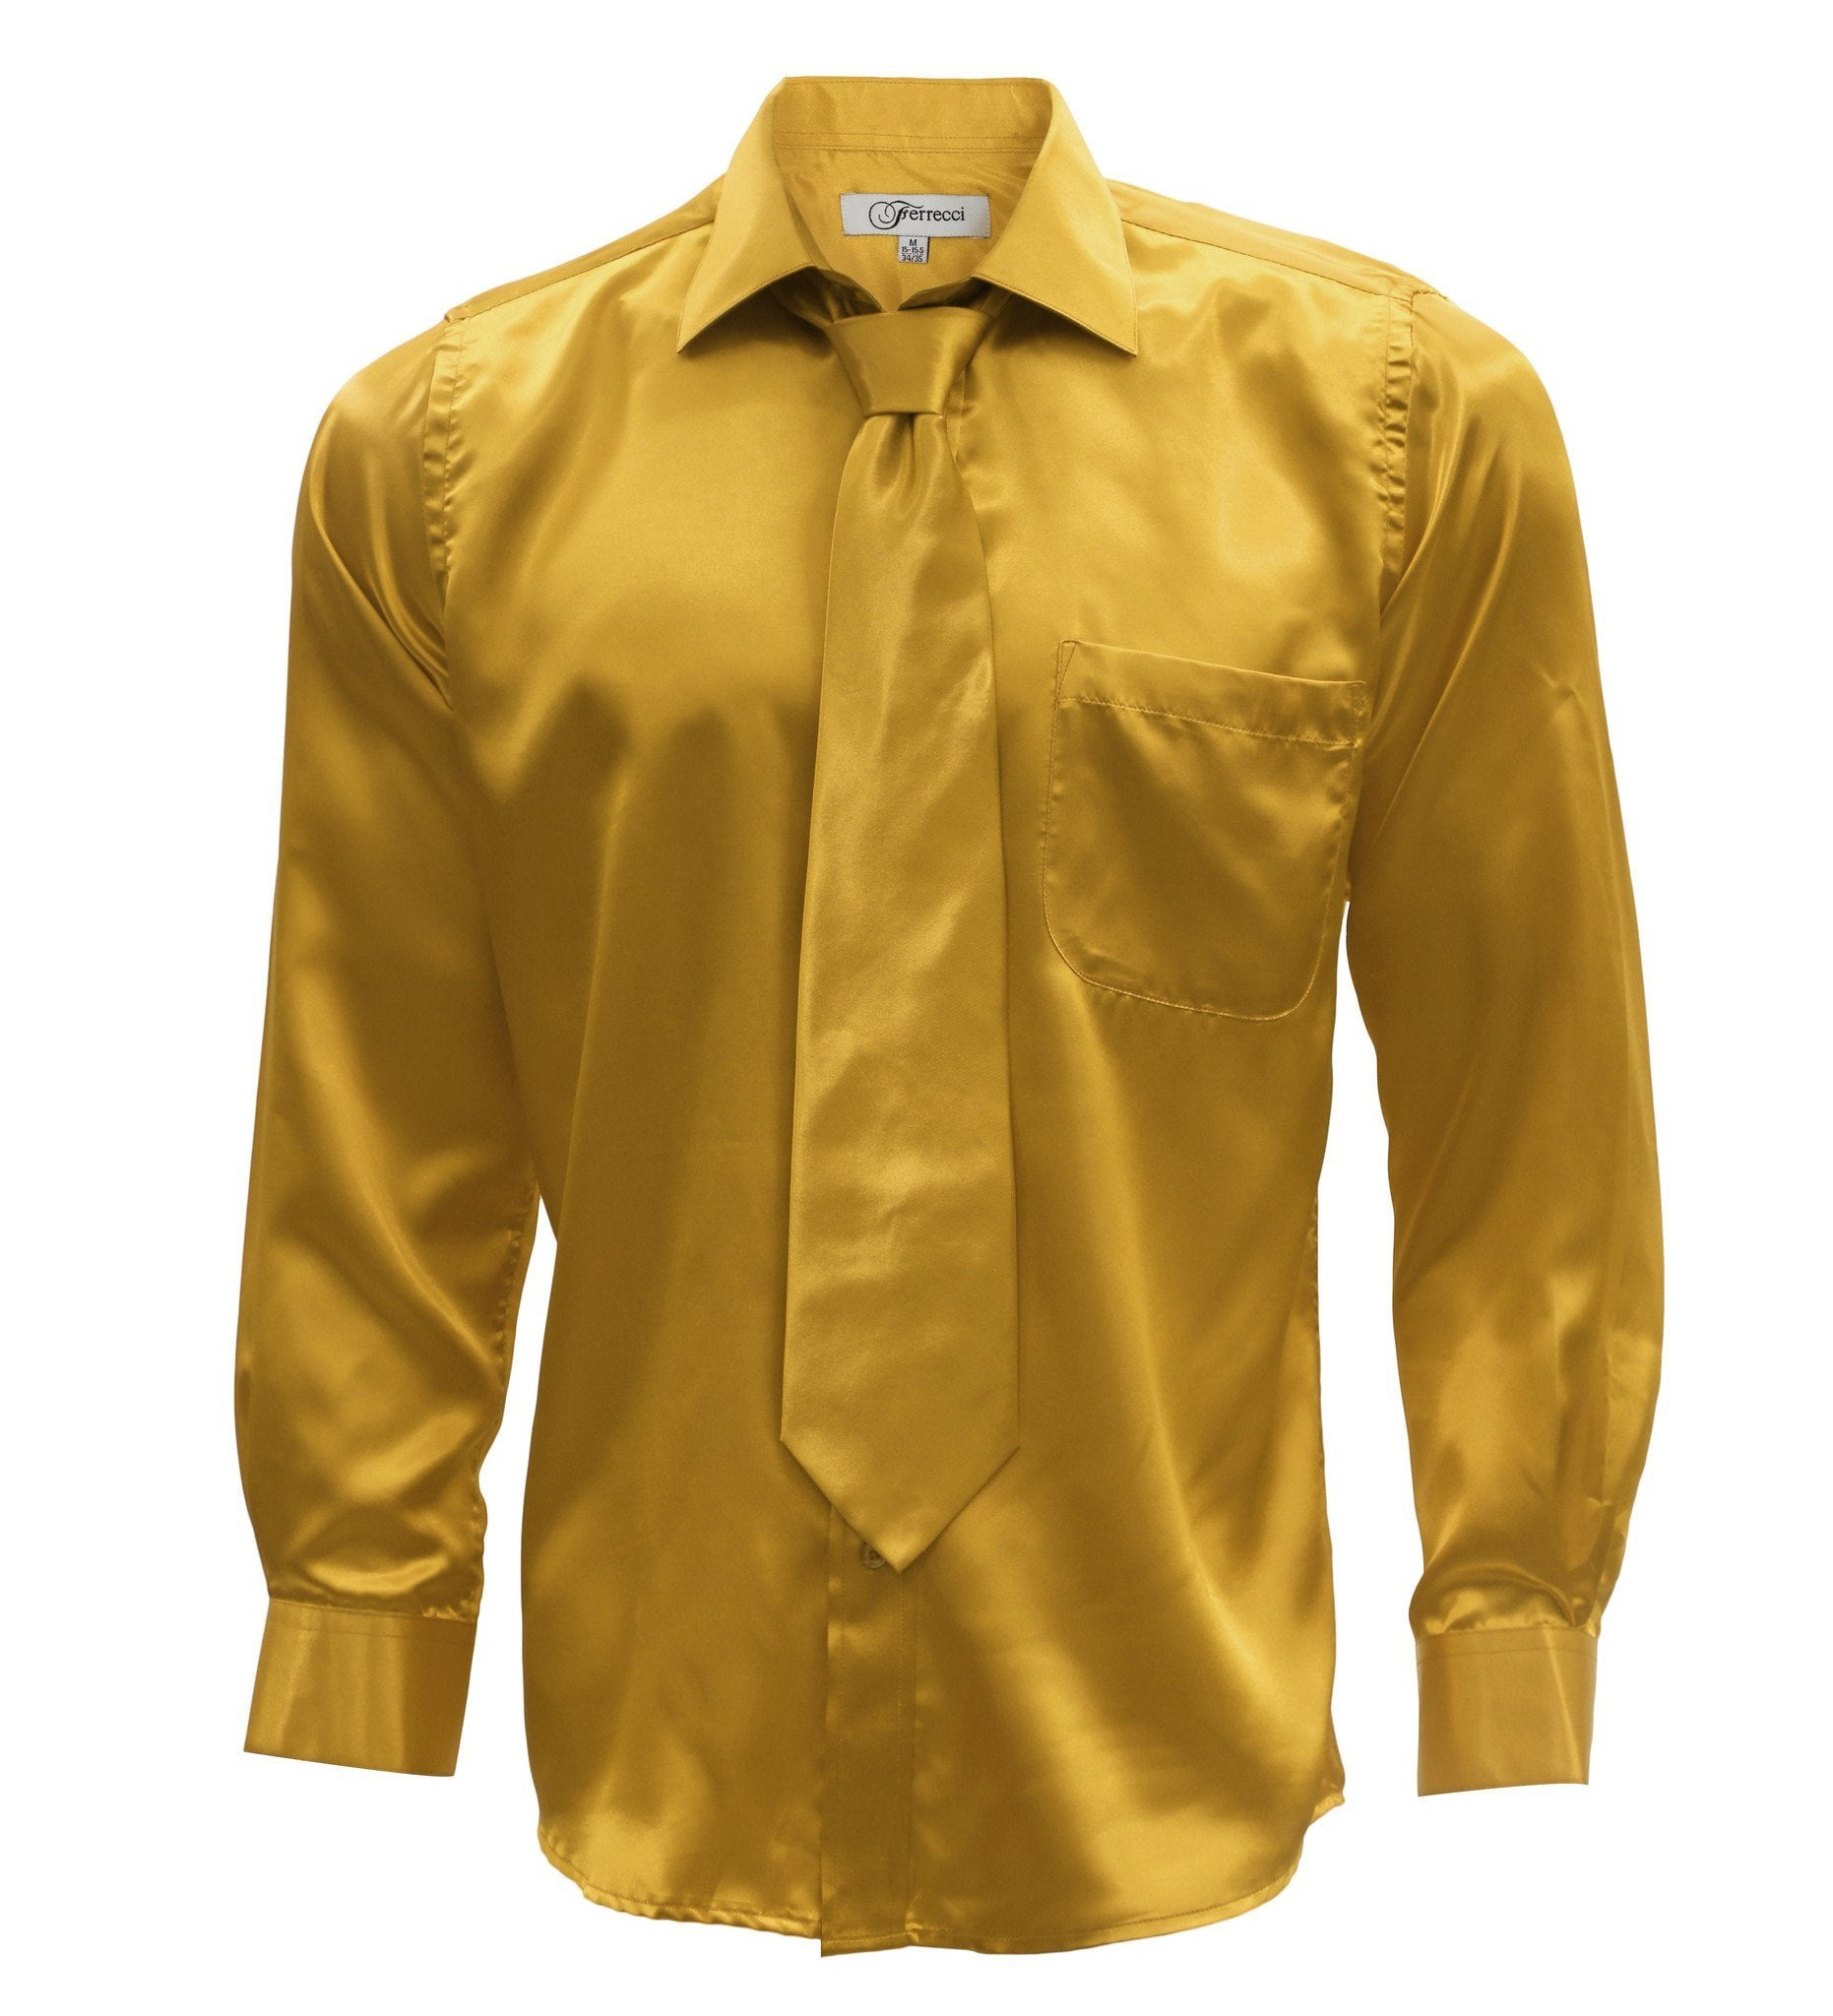 Gold Satin Regular Fit Dress Shirt, Tie & Hanky Set - Giorgio's Menswear